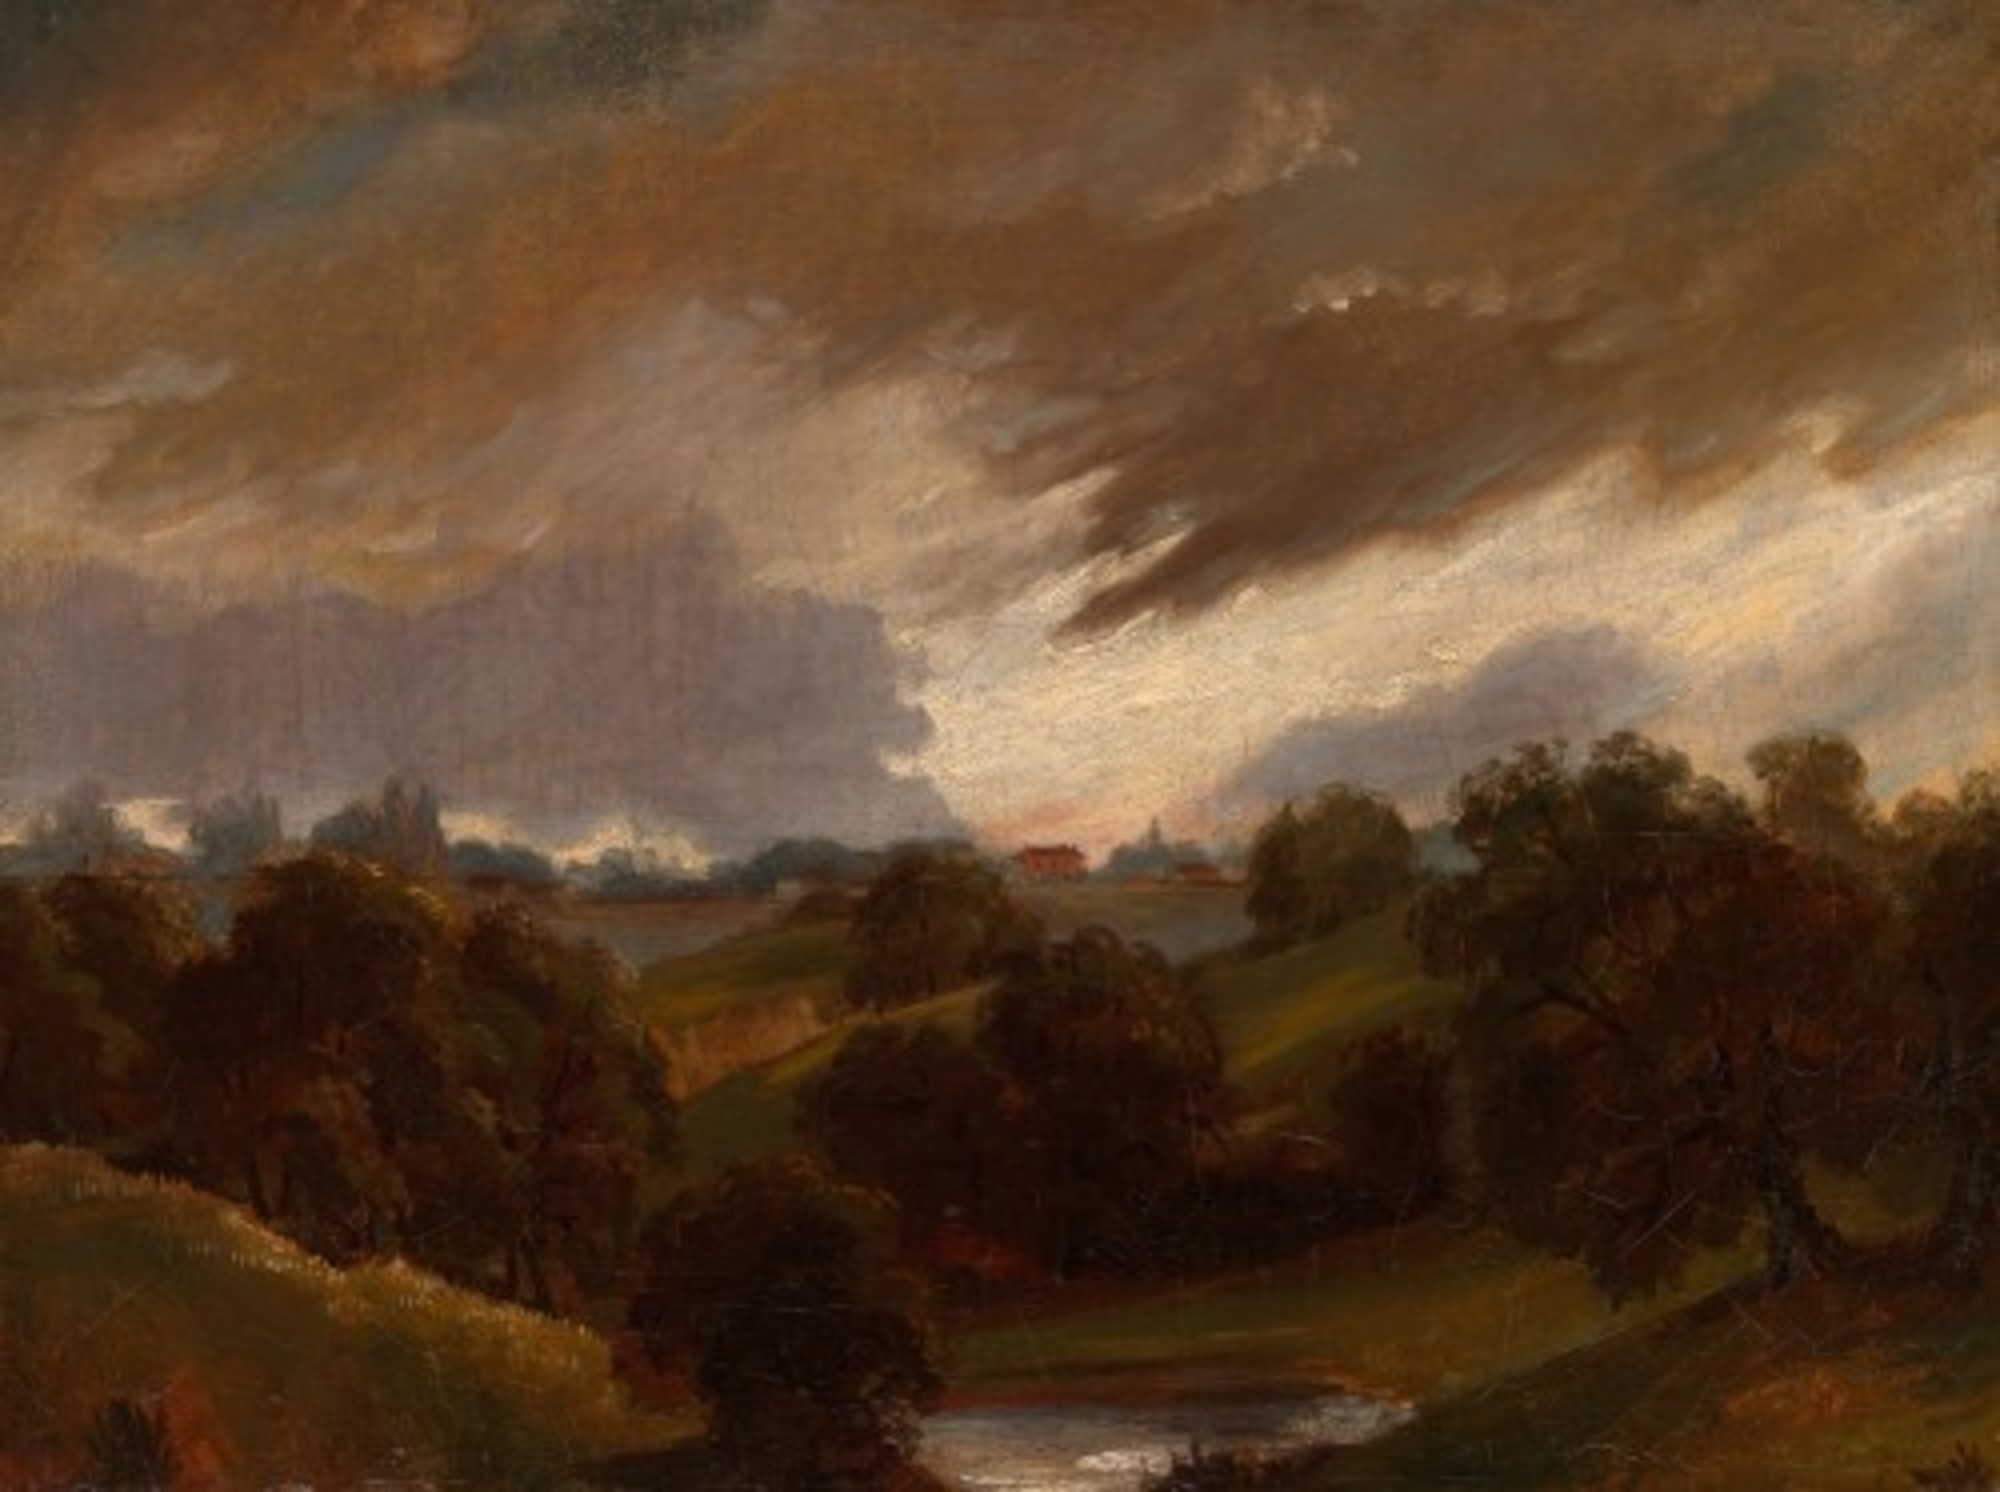 John_Constable_-_Hampstead_Stormy_Sky_-_1974.387_-_Art_Institute_of_Chicago.jpg